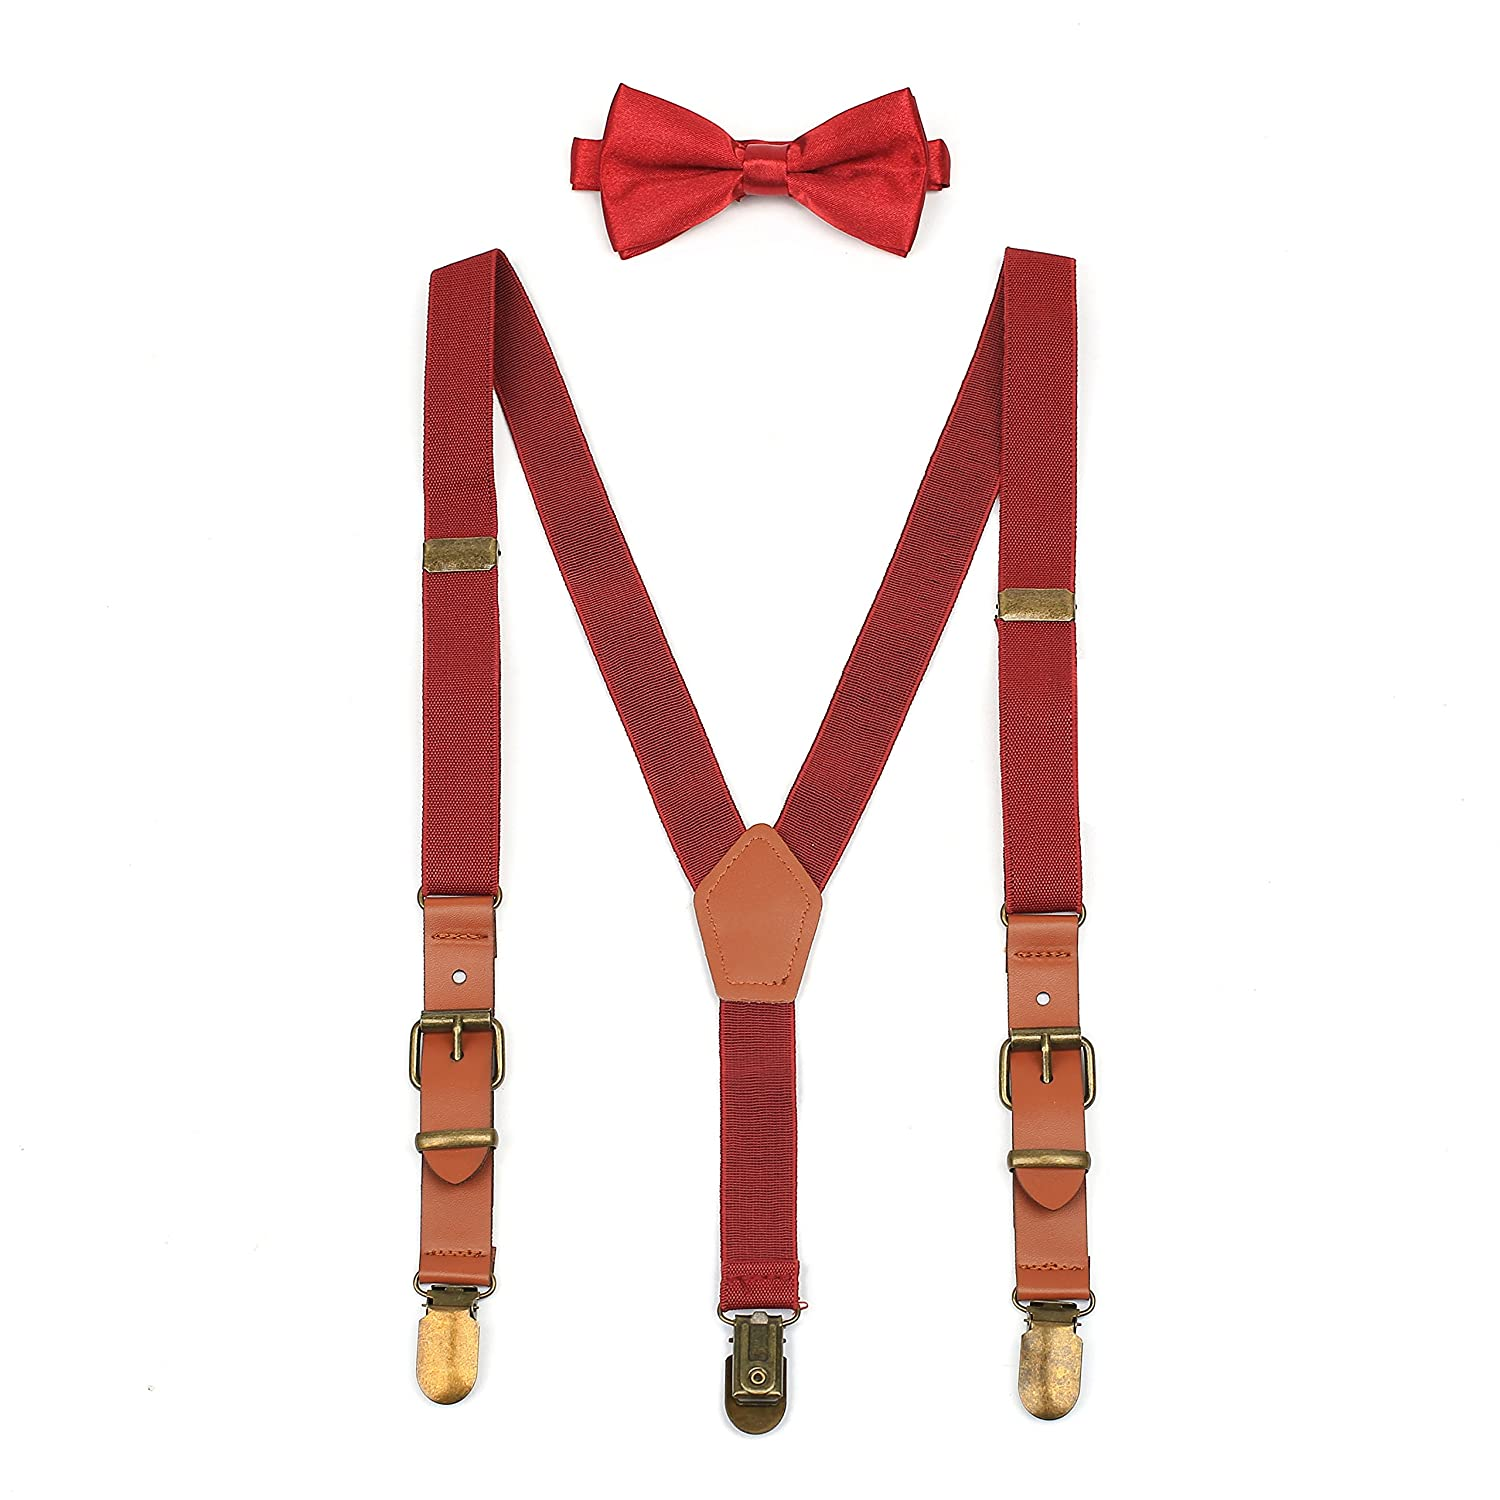 Suspenders & Bowtie Set for Kids and Baby - Y Back Adjustable Strong Clips Synthetic Leather Suspenders 0195Black